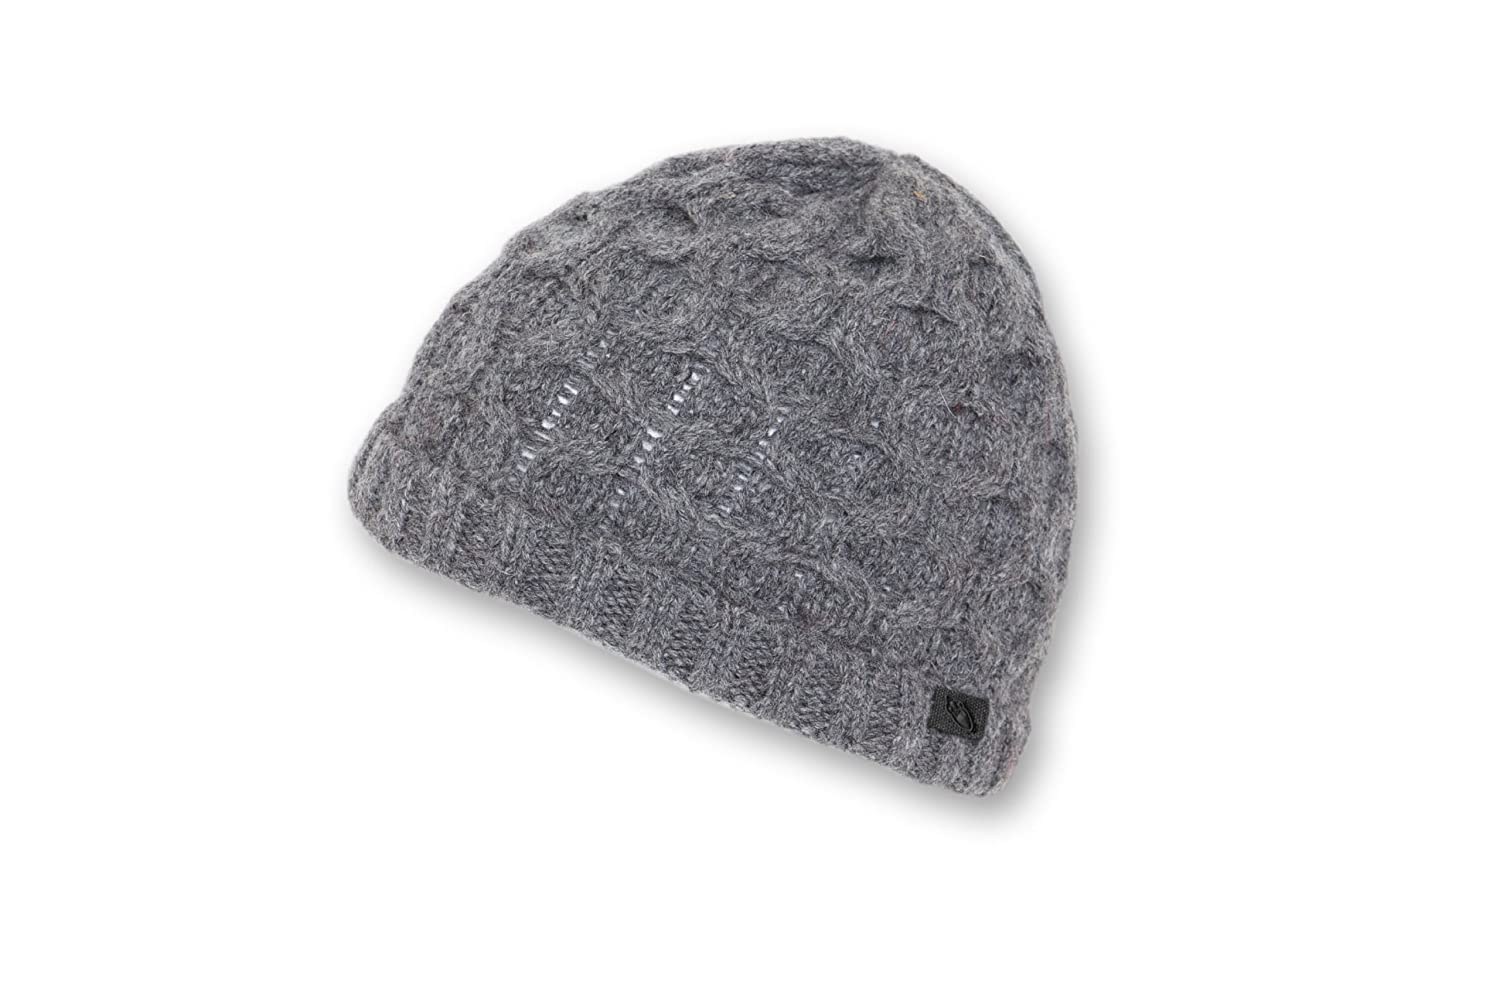 eabf40a14e9 Ignite Nora - Women s Hat grey grey Size One size  Amazon.co.uk  Sports    Outdoors